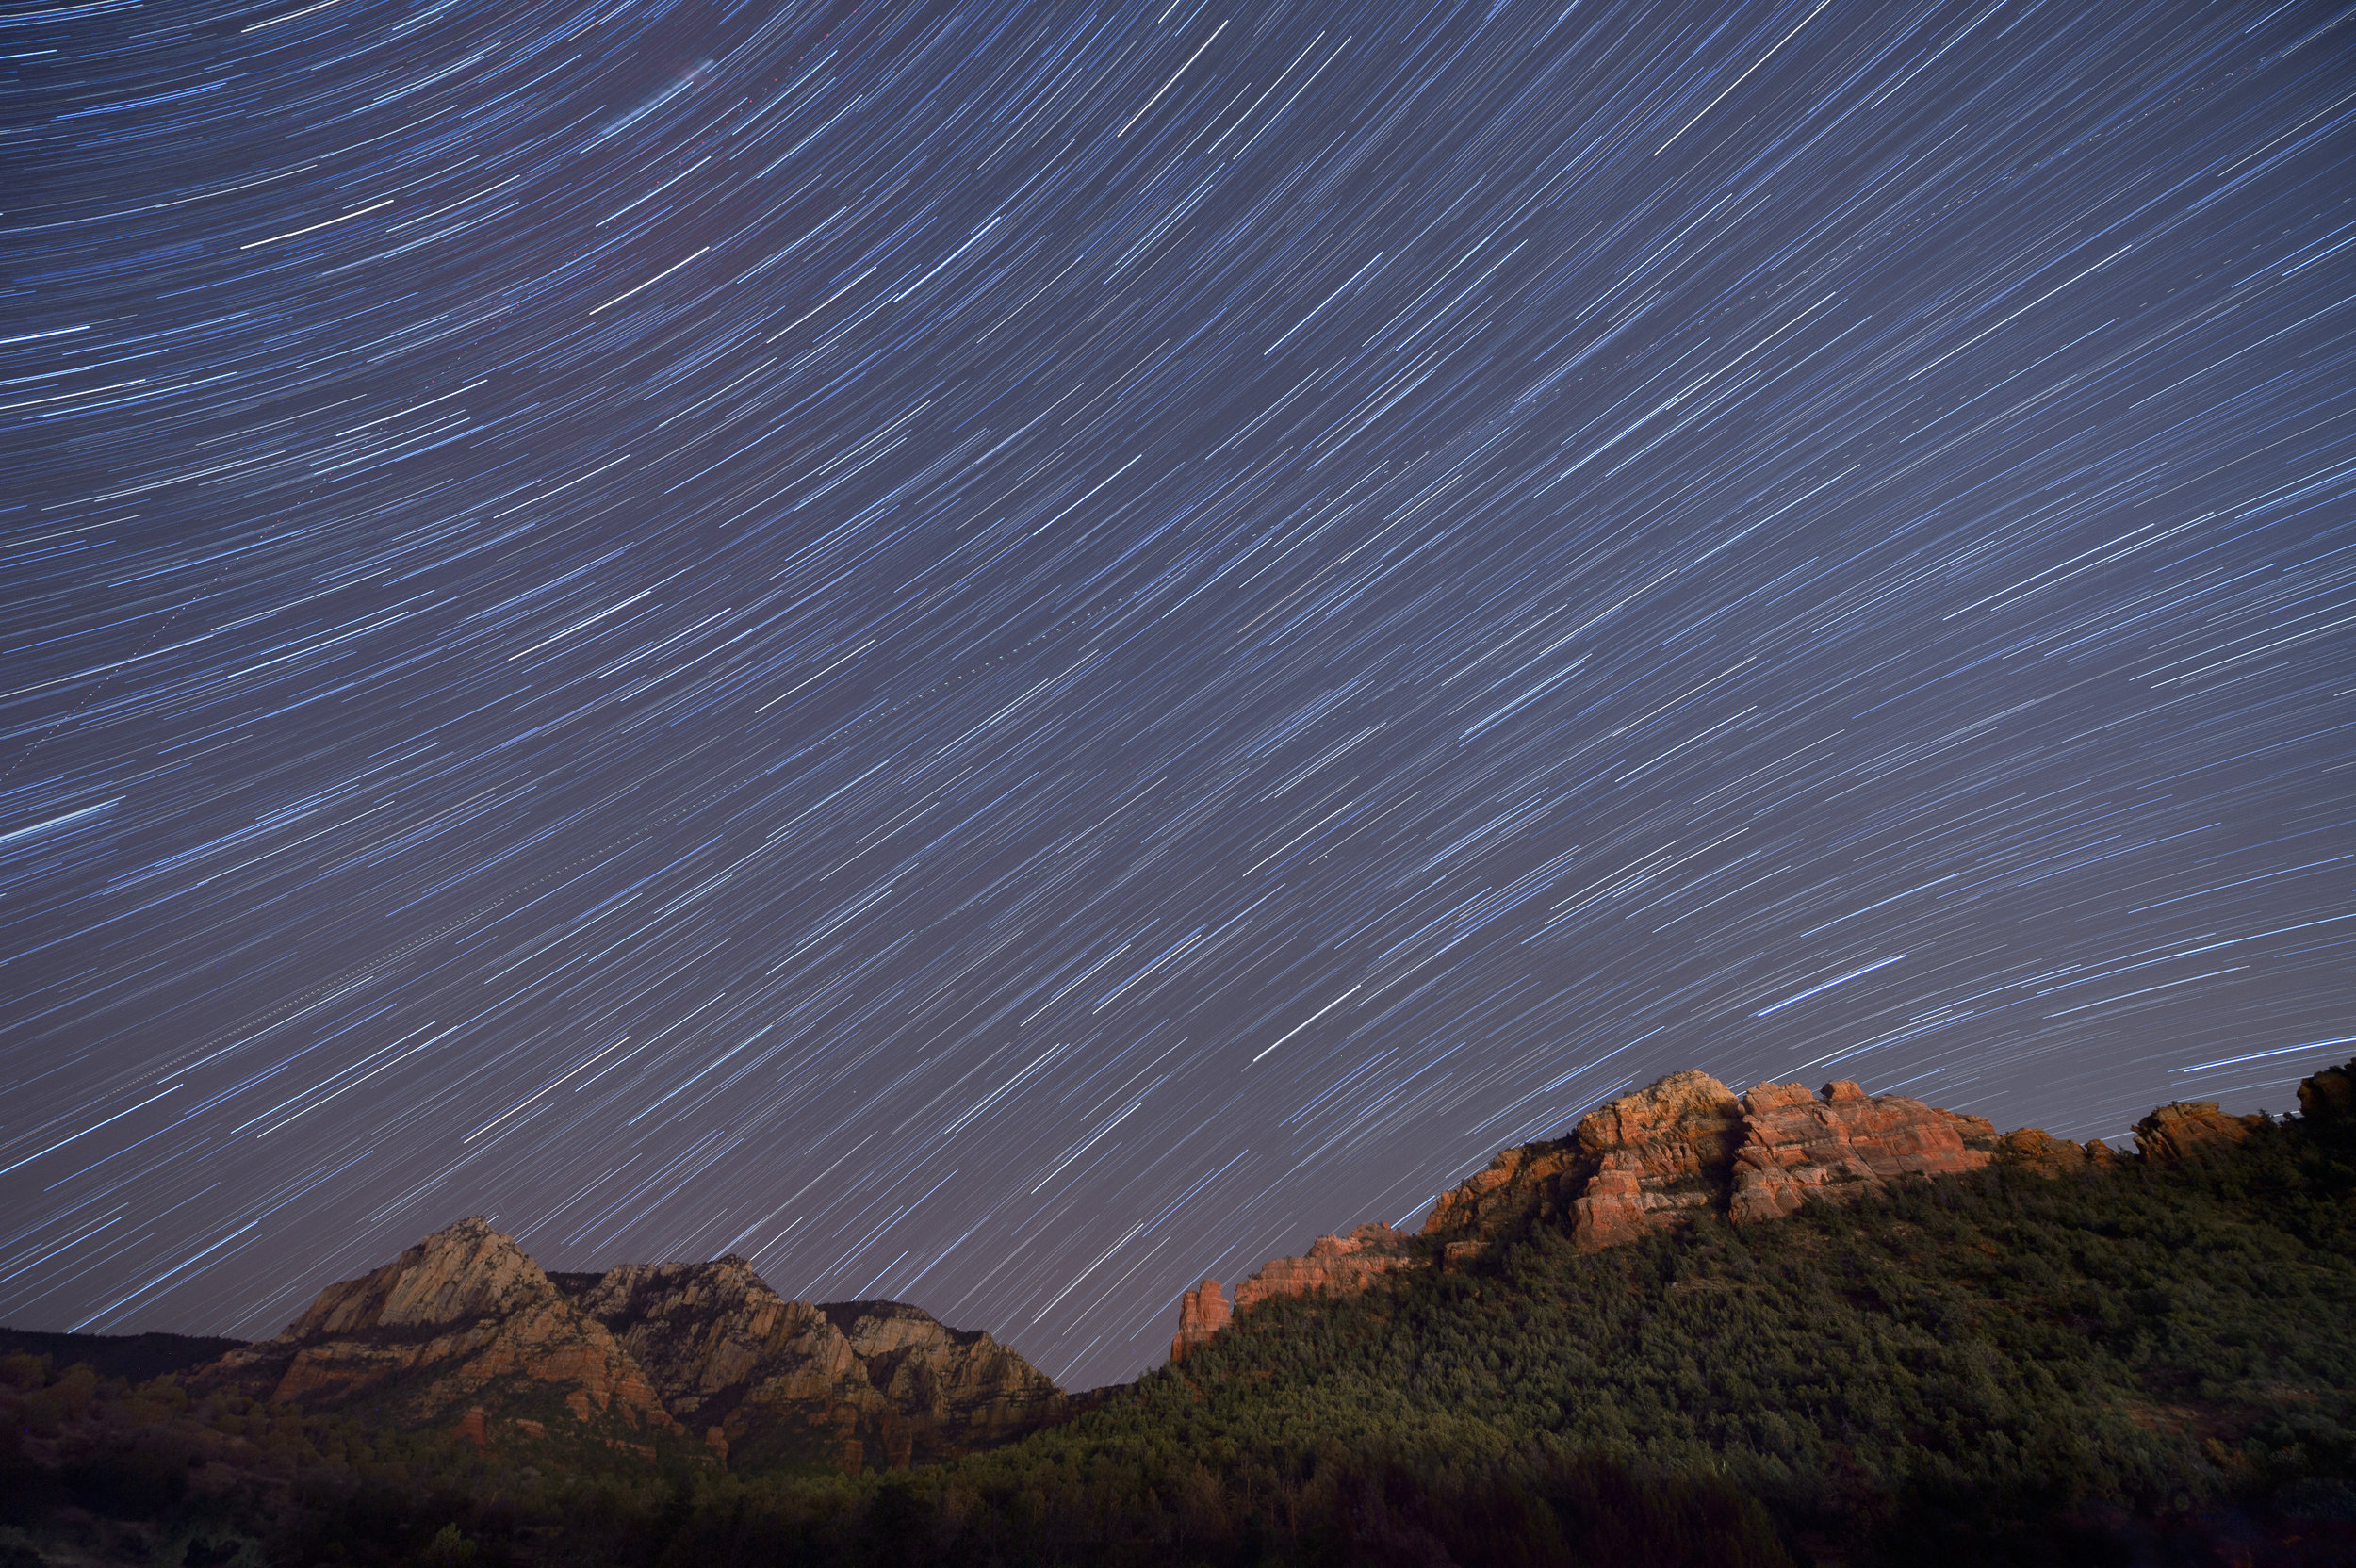 Sedona, Arizona.  Nikon D4s , 14-24mm f/2.8 lens set at 14mm. Eight exposures at 4 minutes, f/4, ISO 200.